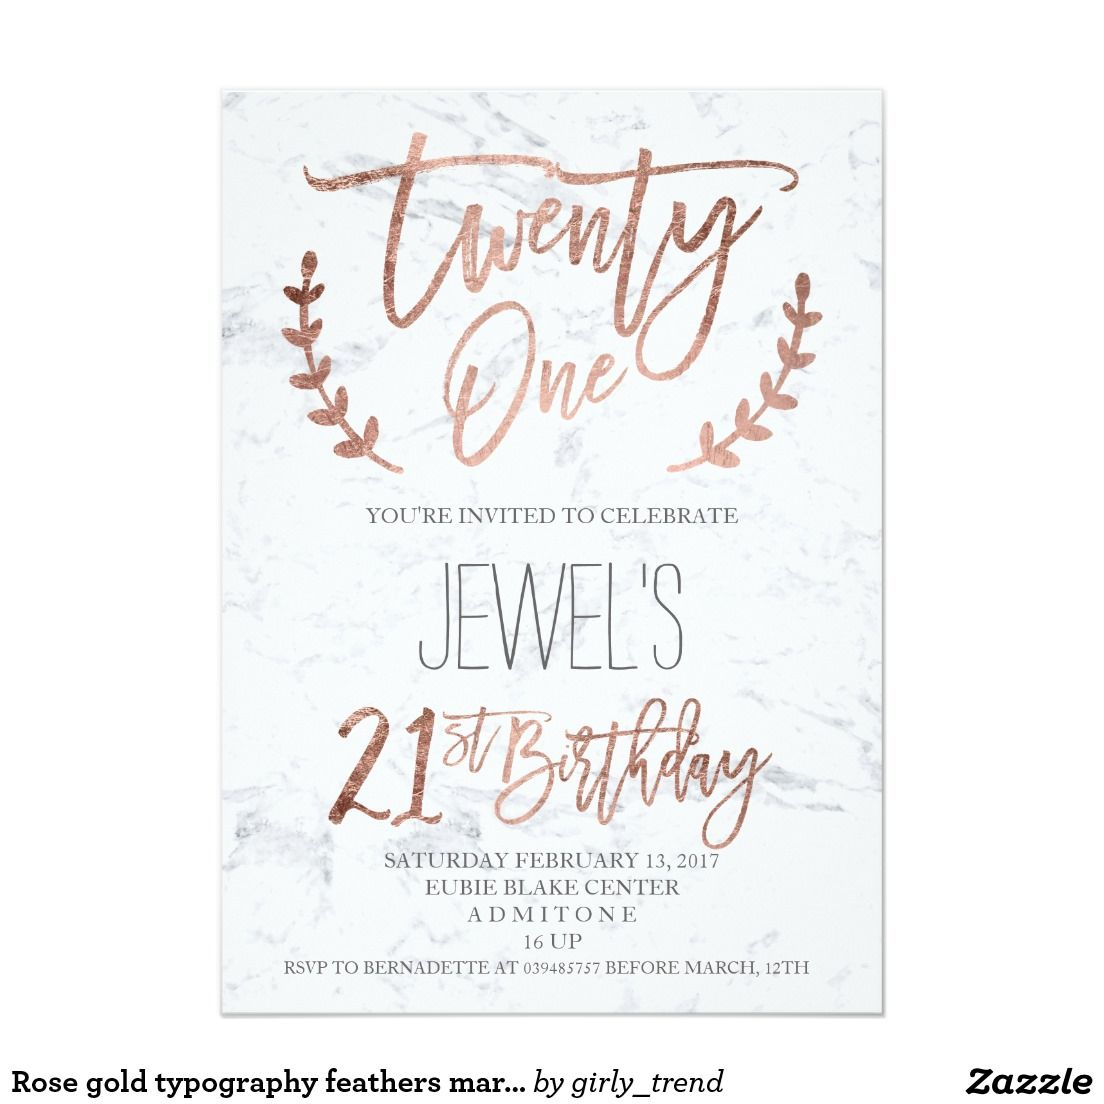 Rose gold typography feathers marble 21st Birthday Card | 21st ...